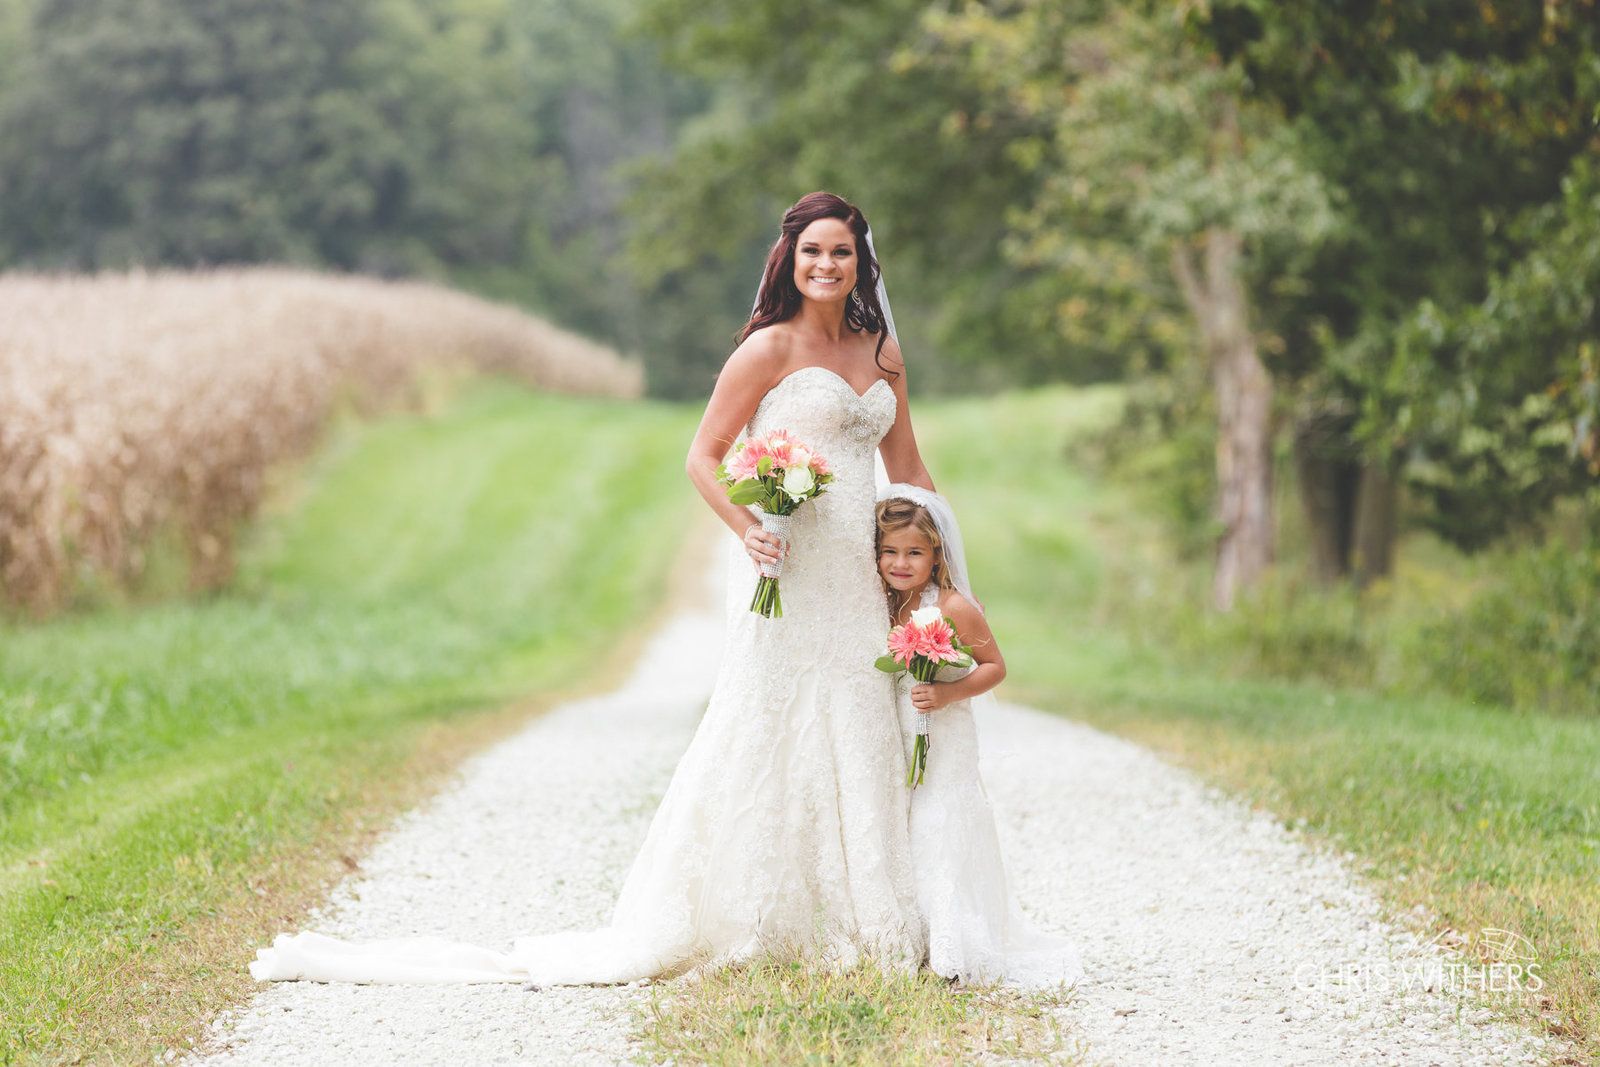 Springfield Illinois Wedding Photographer - Chris Withers Photography (107 of 159)